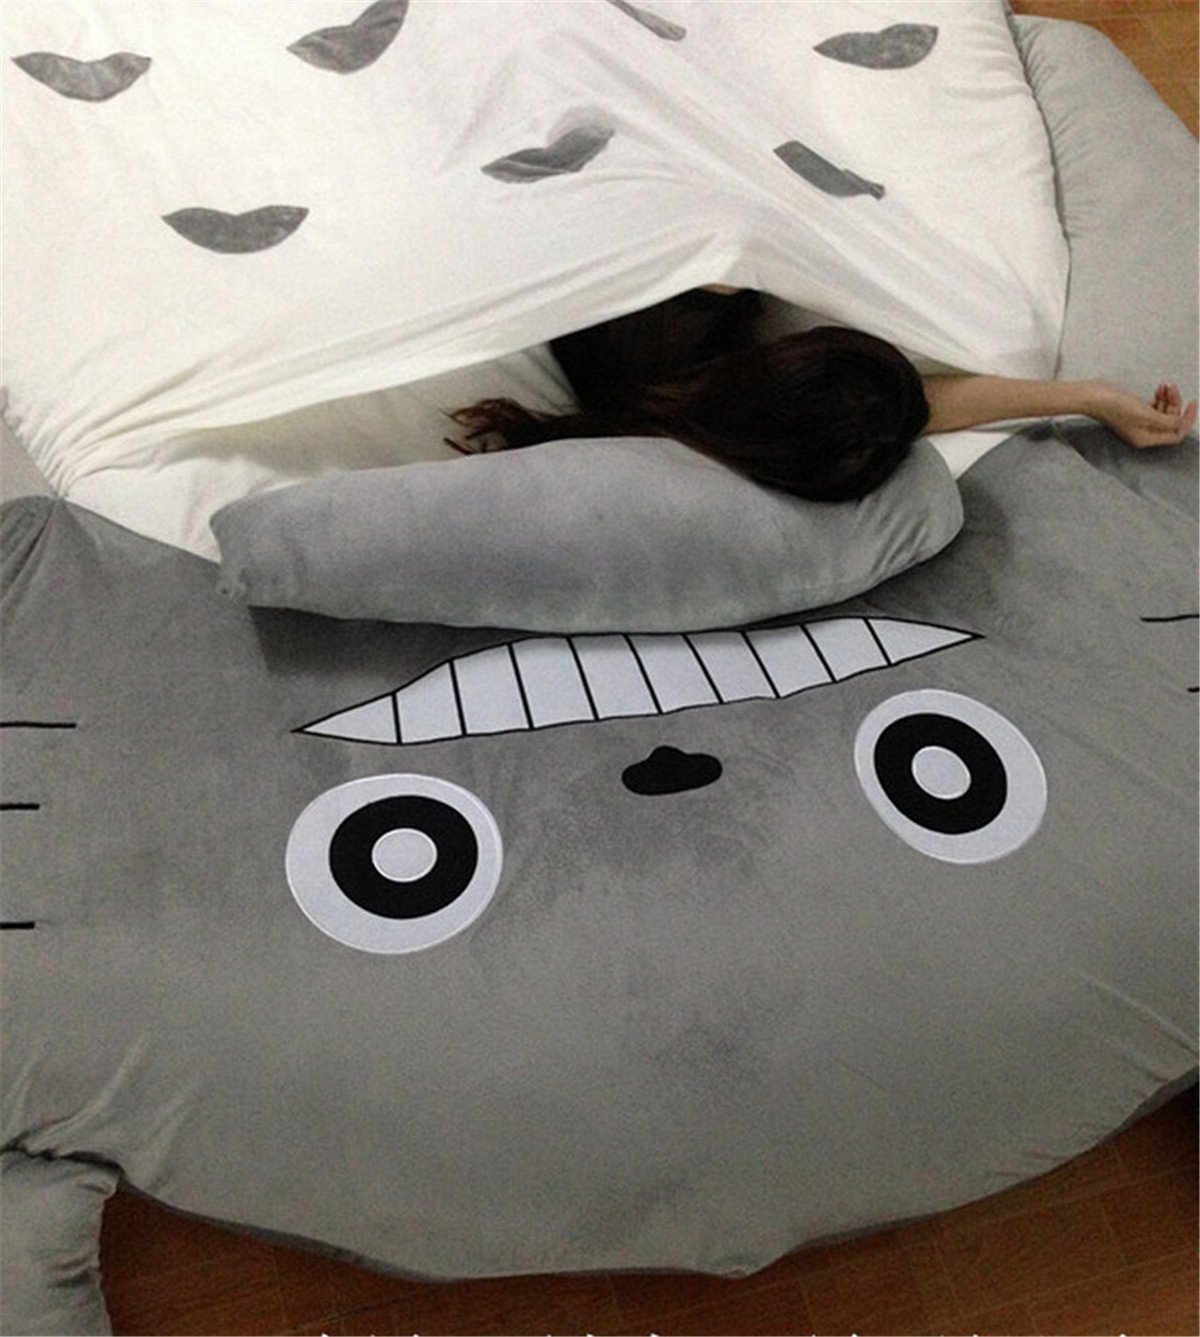 HOT SALE Children's and Adult Totoro Design Big Sofa Totoro Bed Mattress Sleeping Bag Mattress by VU ROUL (Image #8)